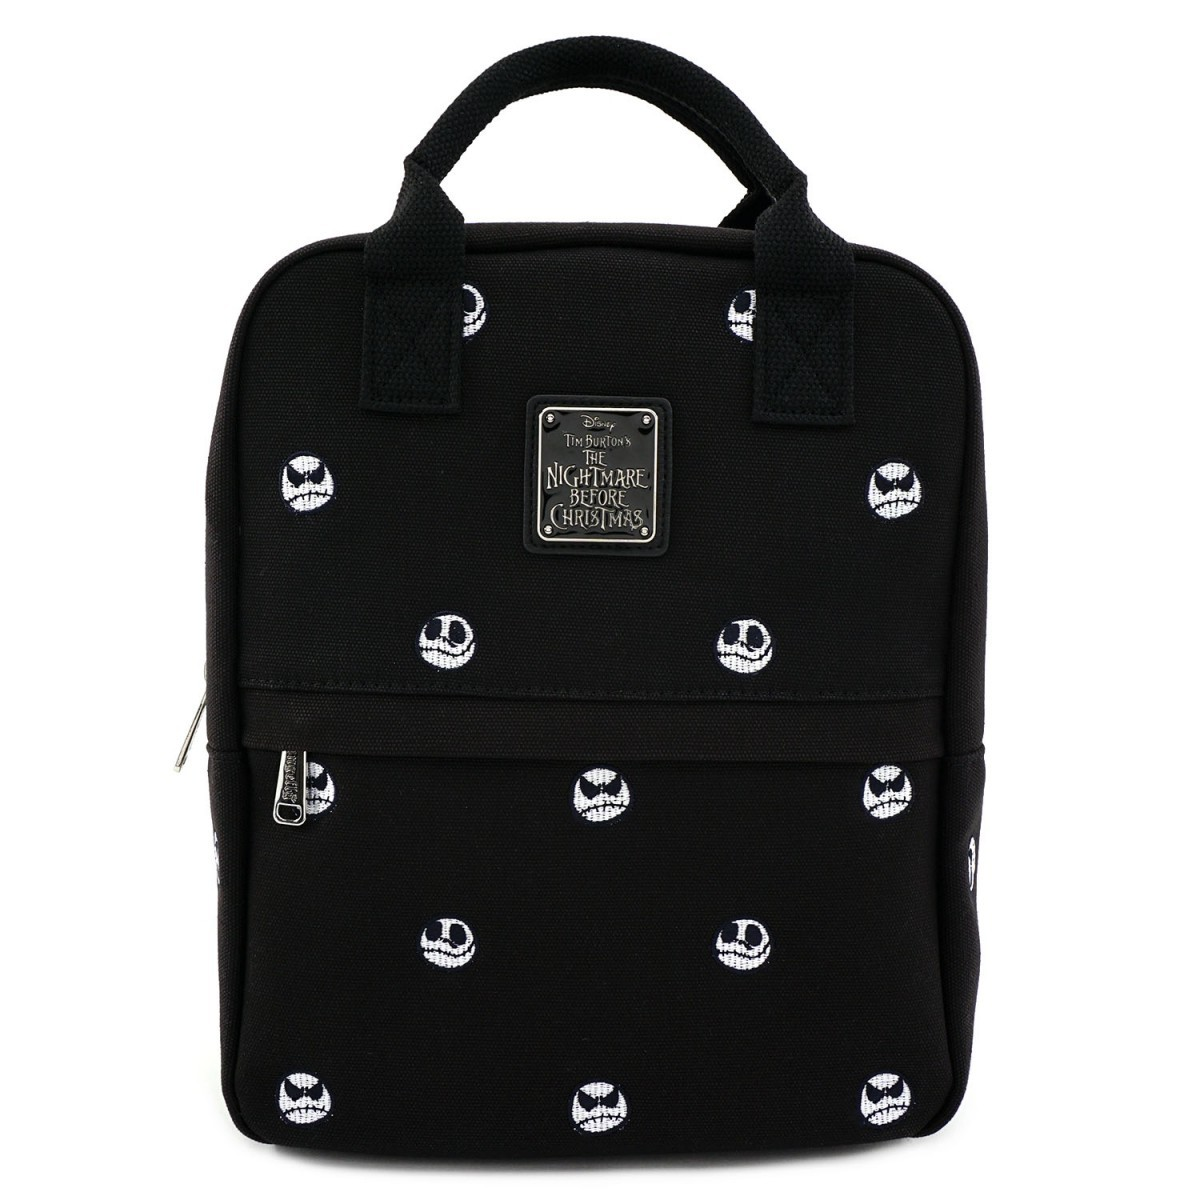 Loungefly: The Nightmare Before Christmas Embroidered Backpack - Jack Head image